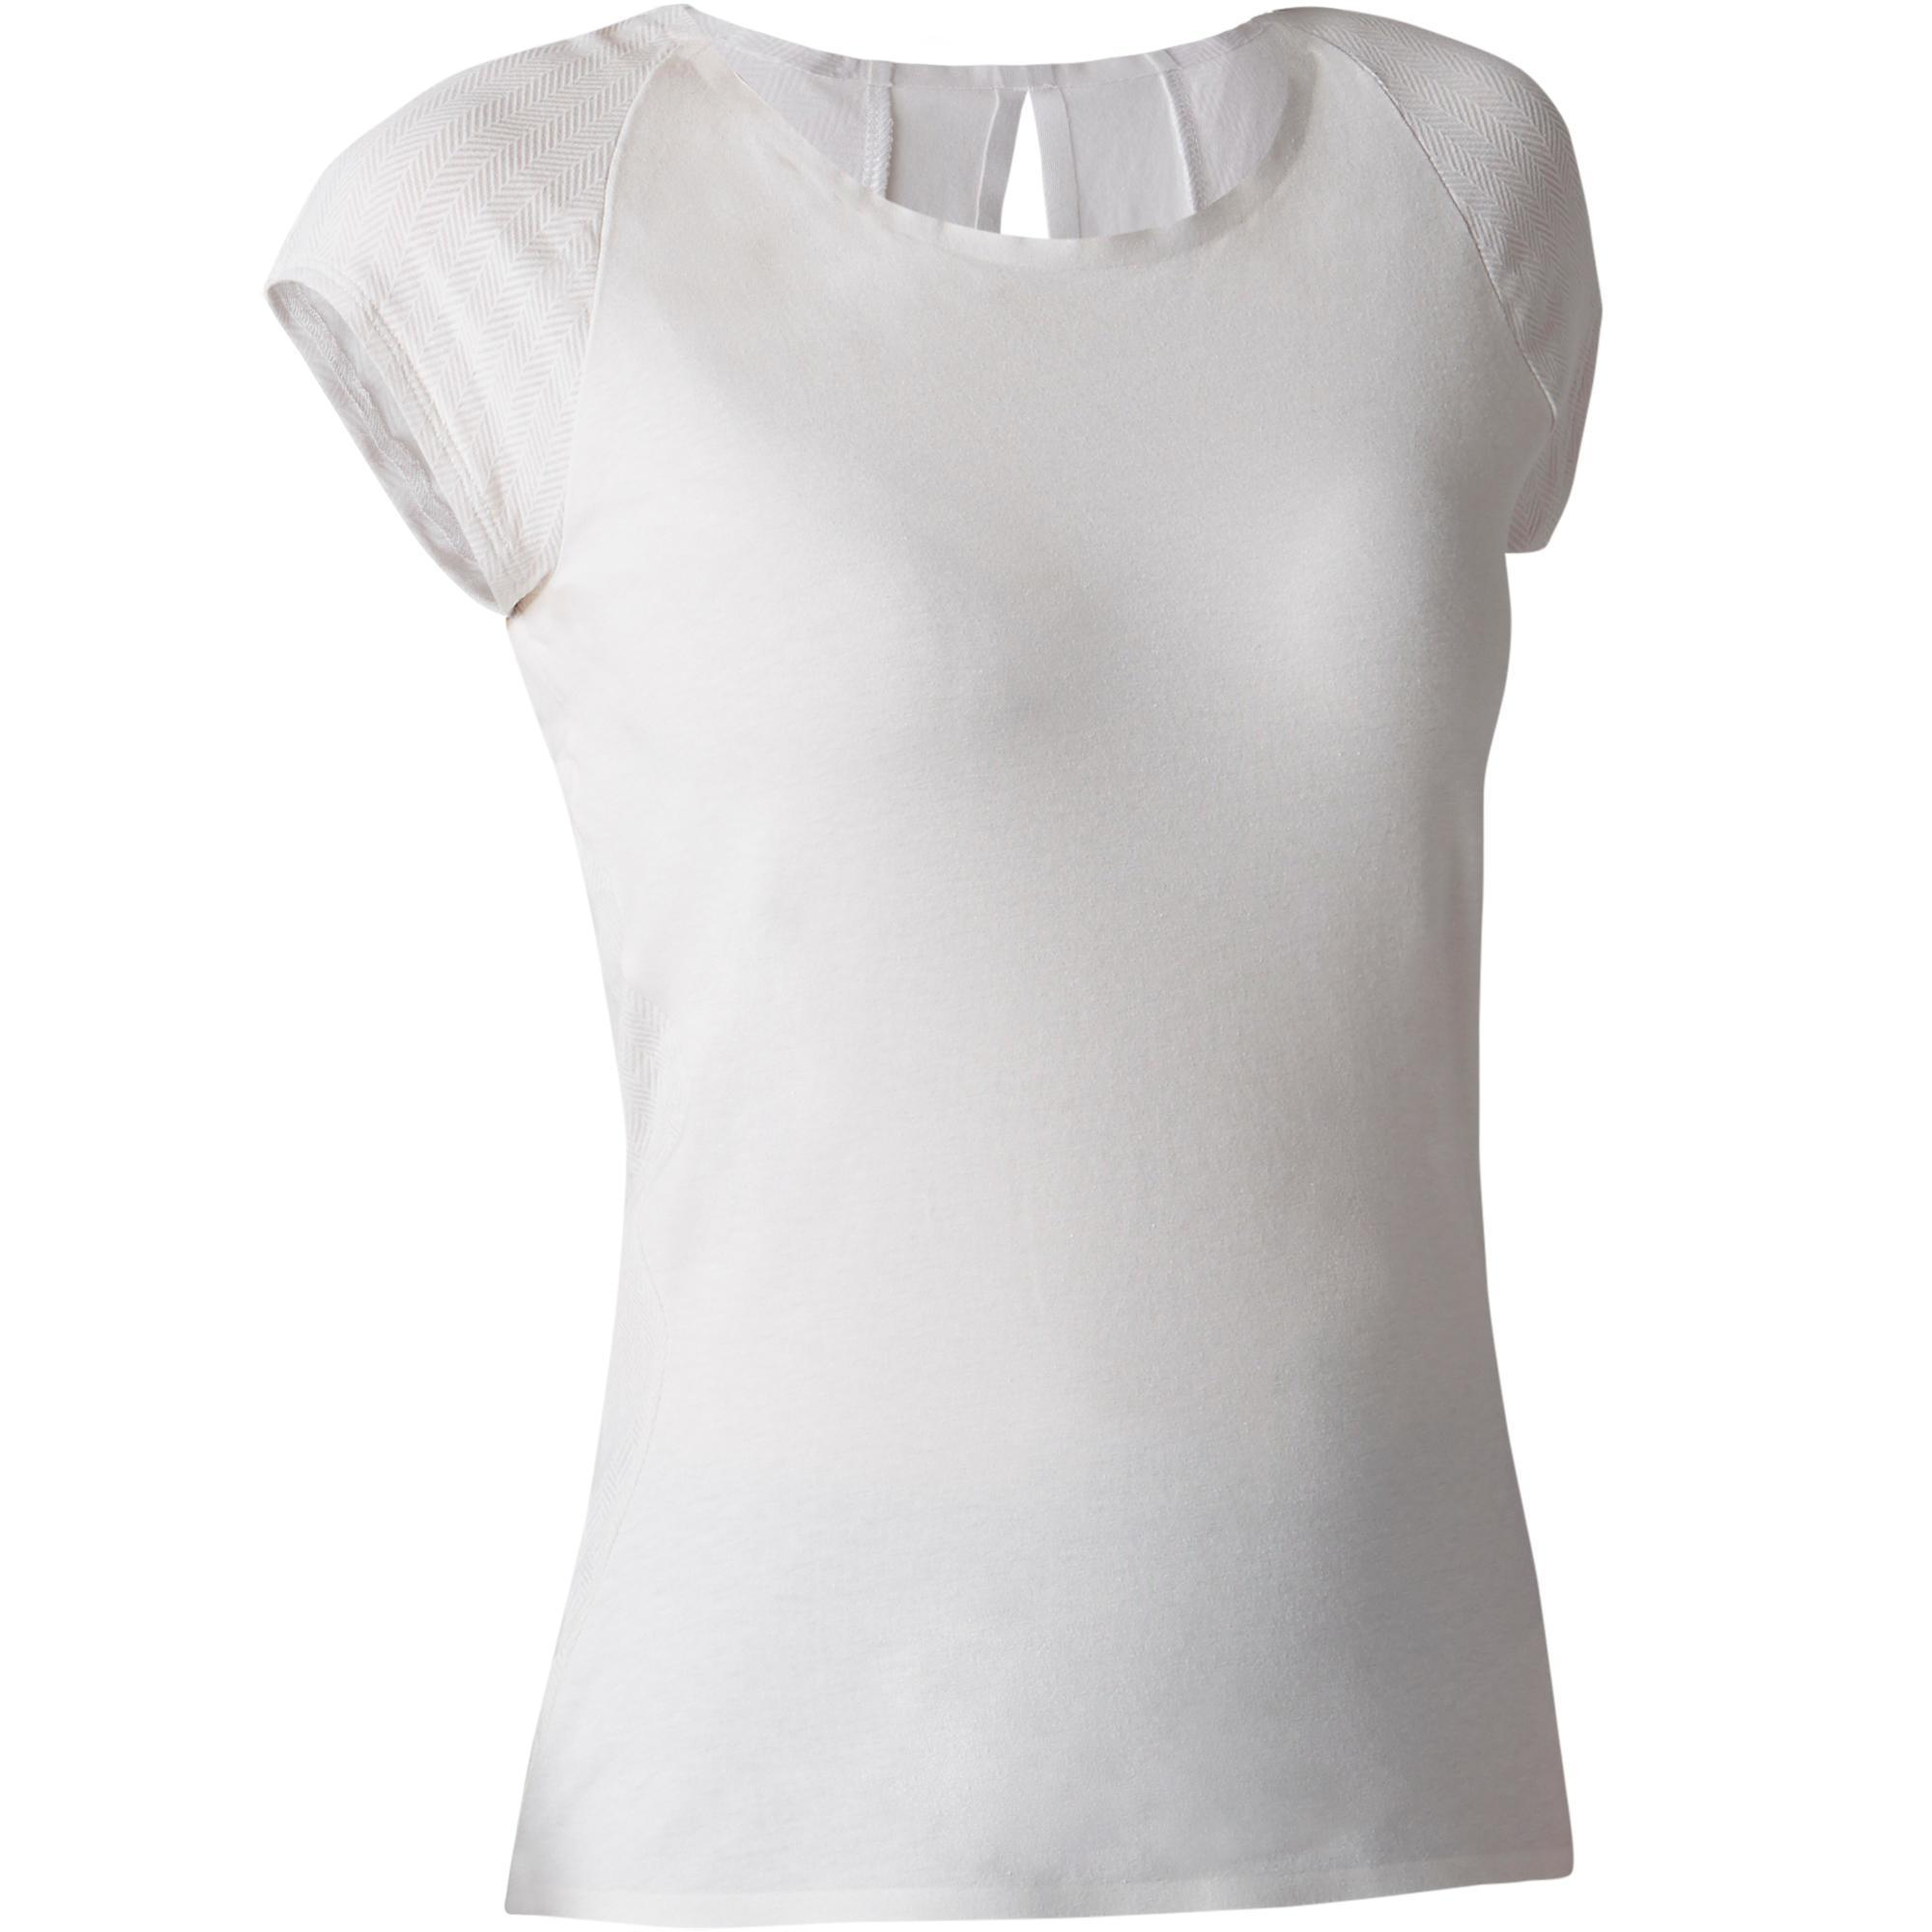 Domyos Dames T-shirt 900 voor gym, stretching en pilates